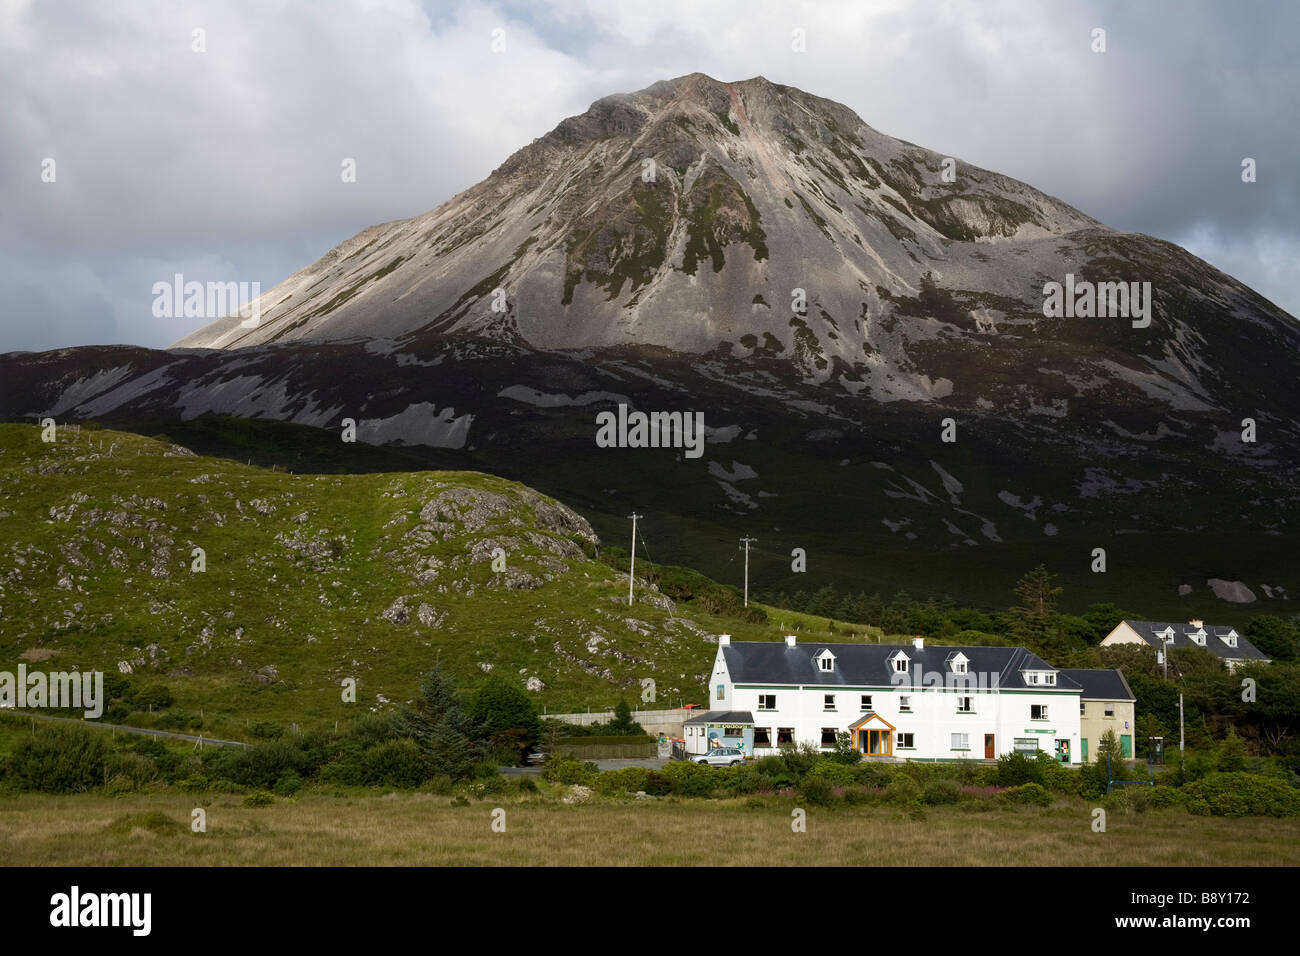 Houses beneath a mountain, Mount Errigal, Dunlewy, County Donegal, Ulster Province, Ireland - Stock Image